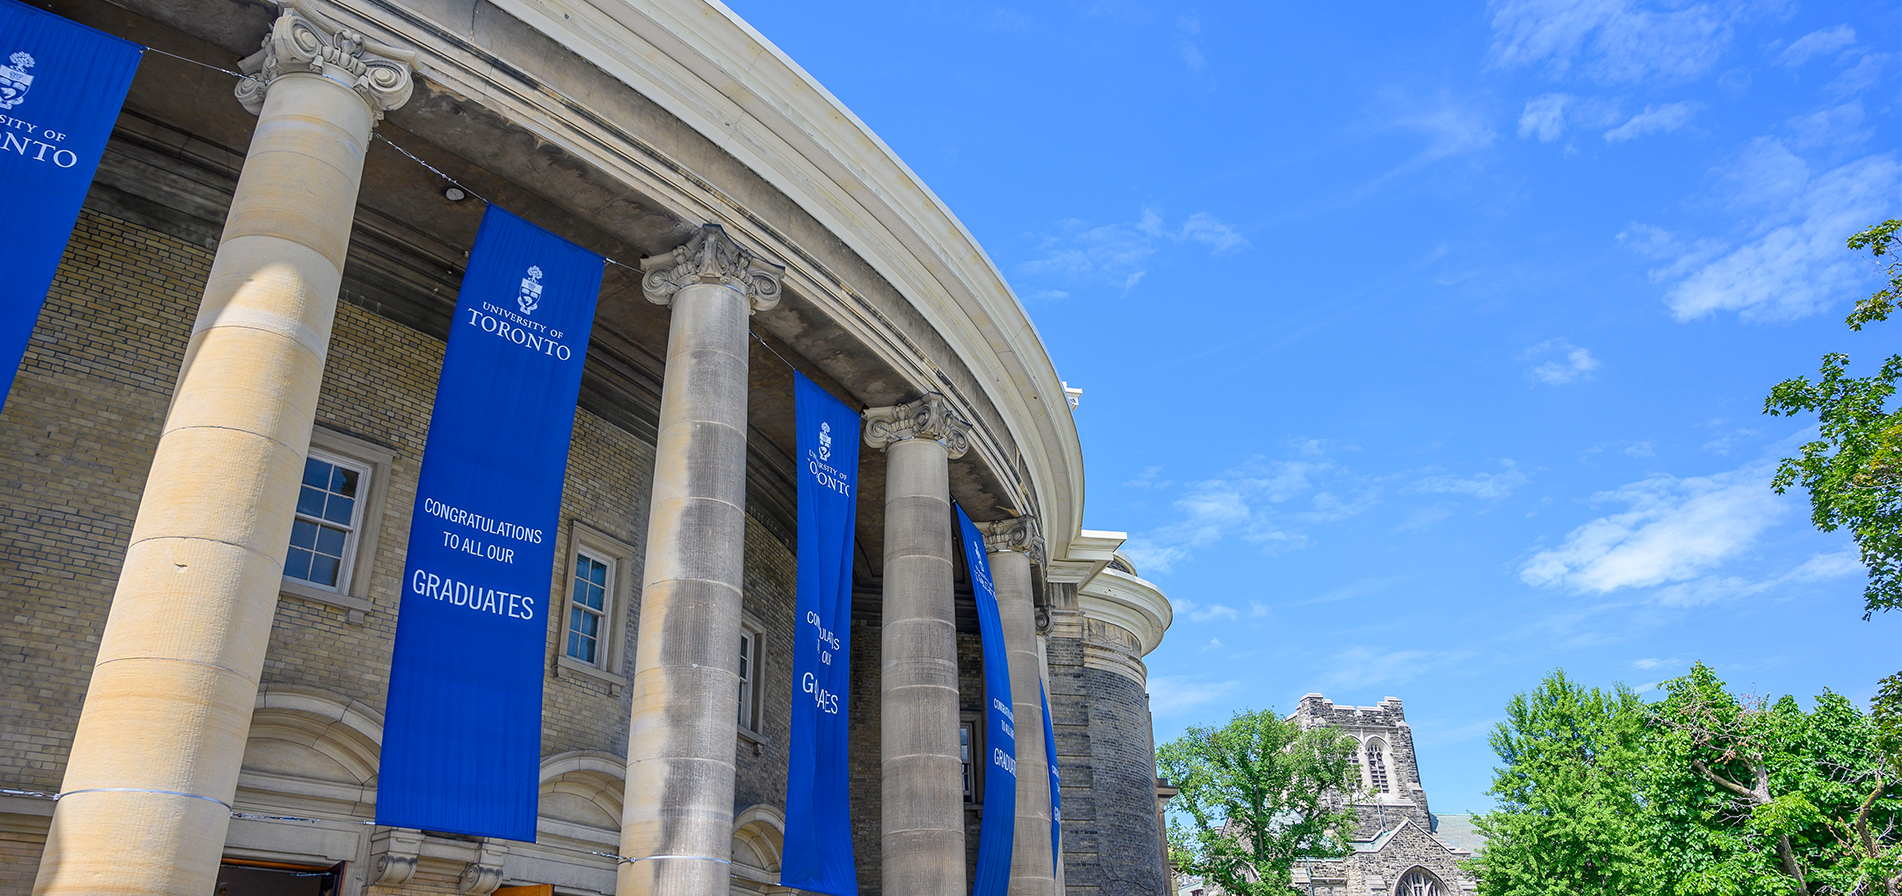 Graduation banners hang from the columns at Convocation Hall at the University of Toronto's St. George campus.